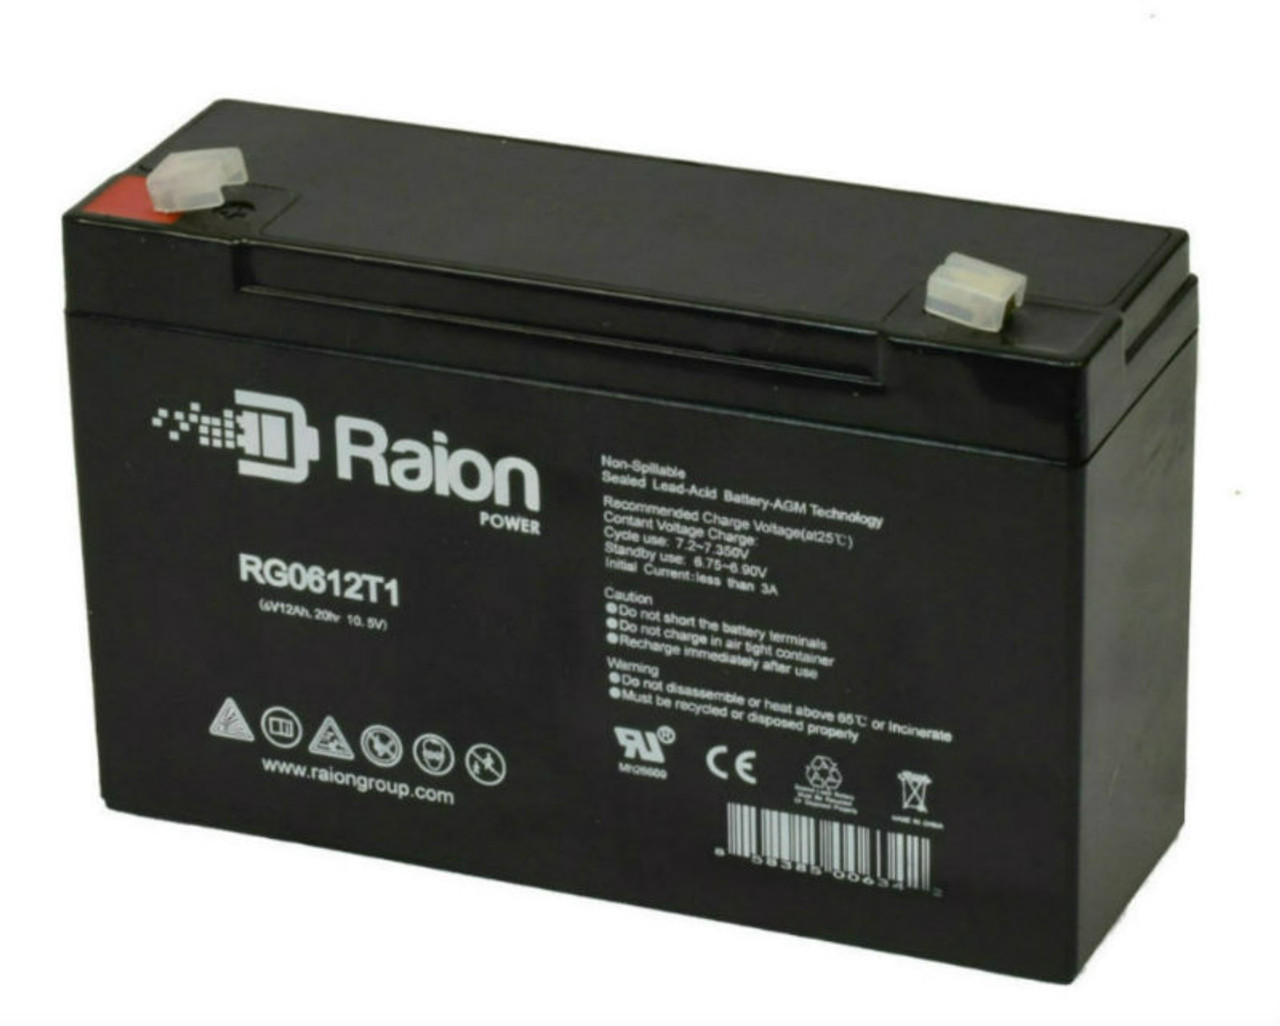 Raion Power RG06120T1 Replacement Battery Pack for Chloride CMF25 emergency light